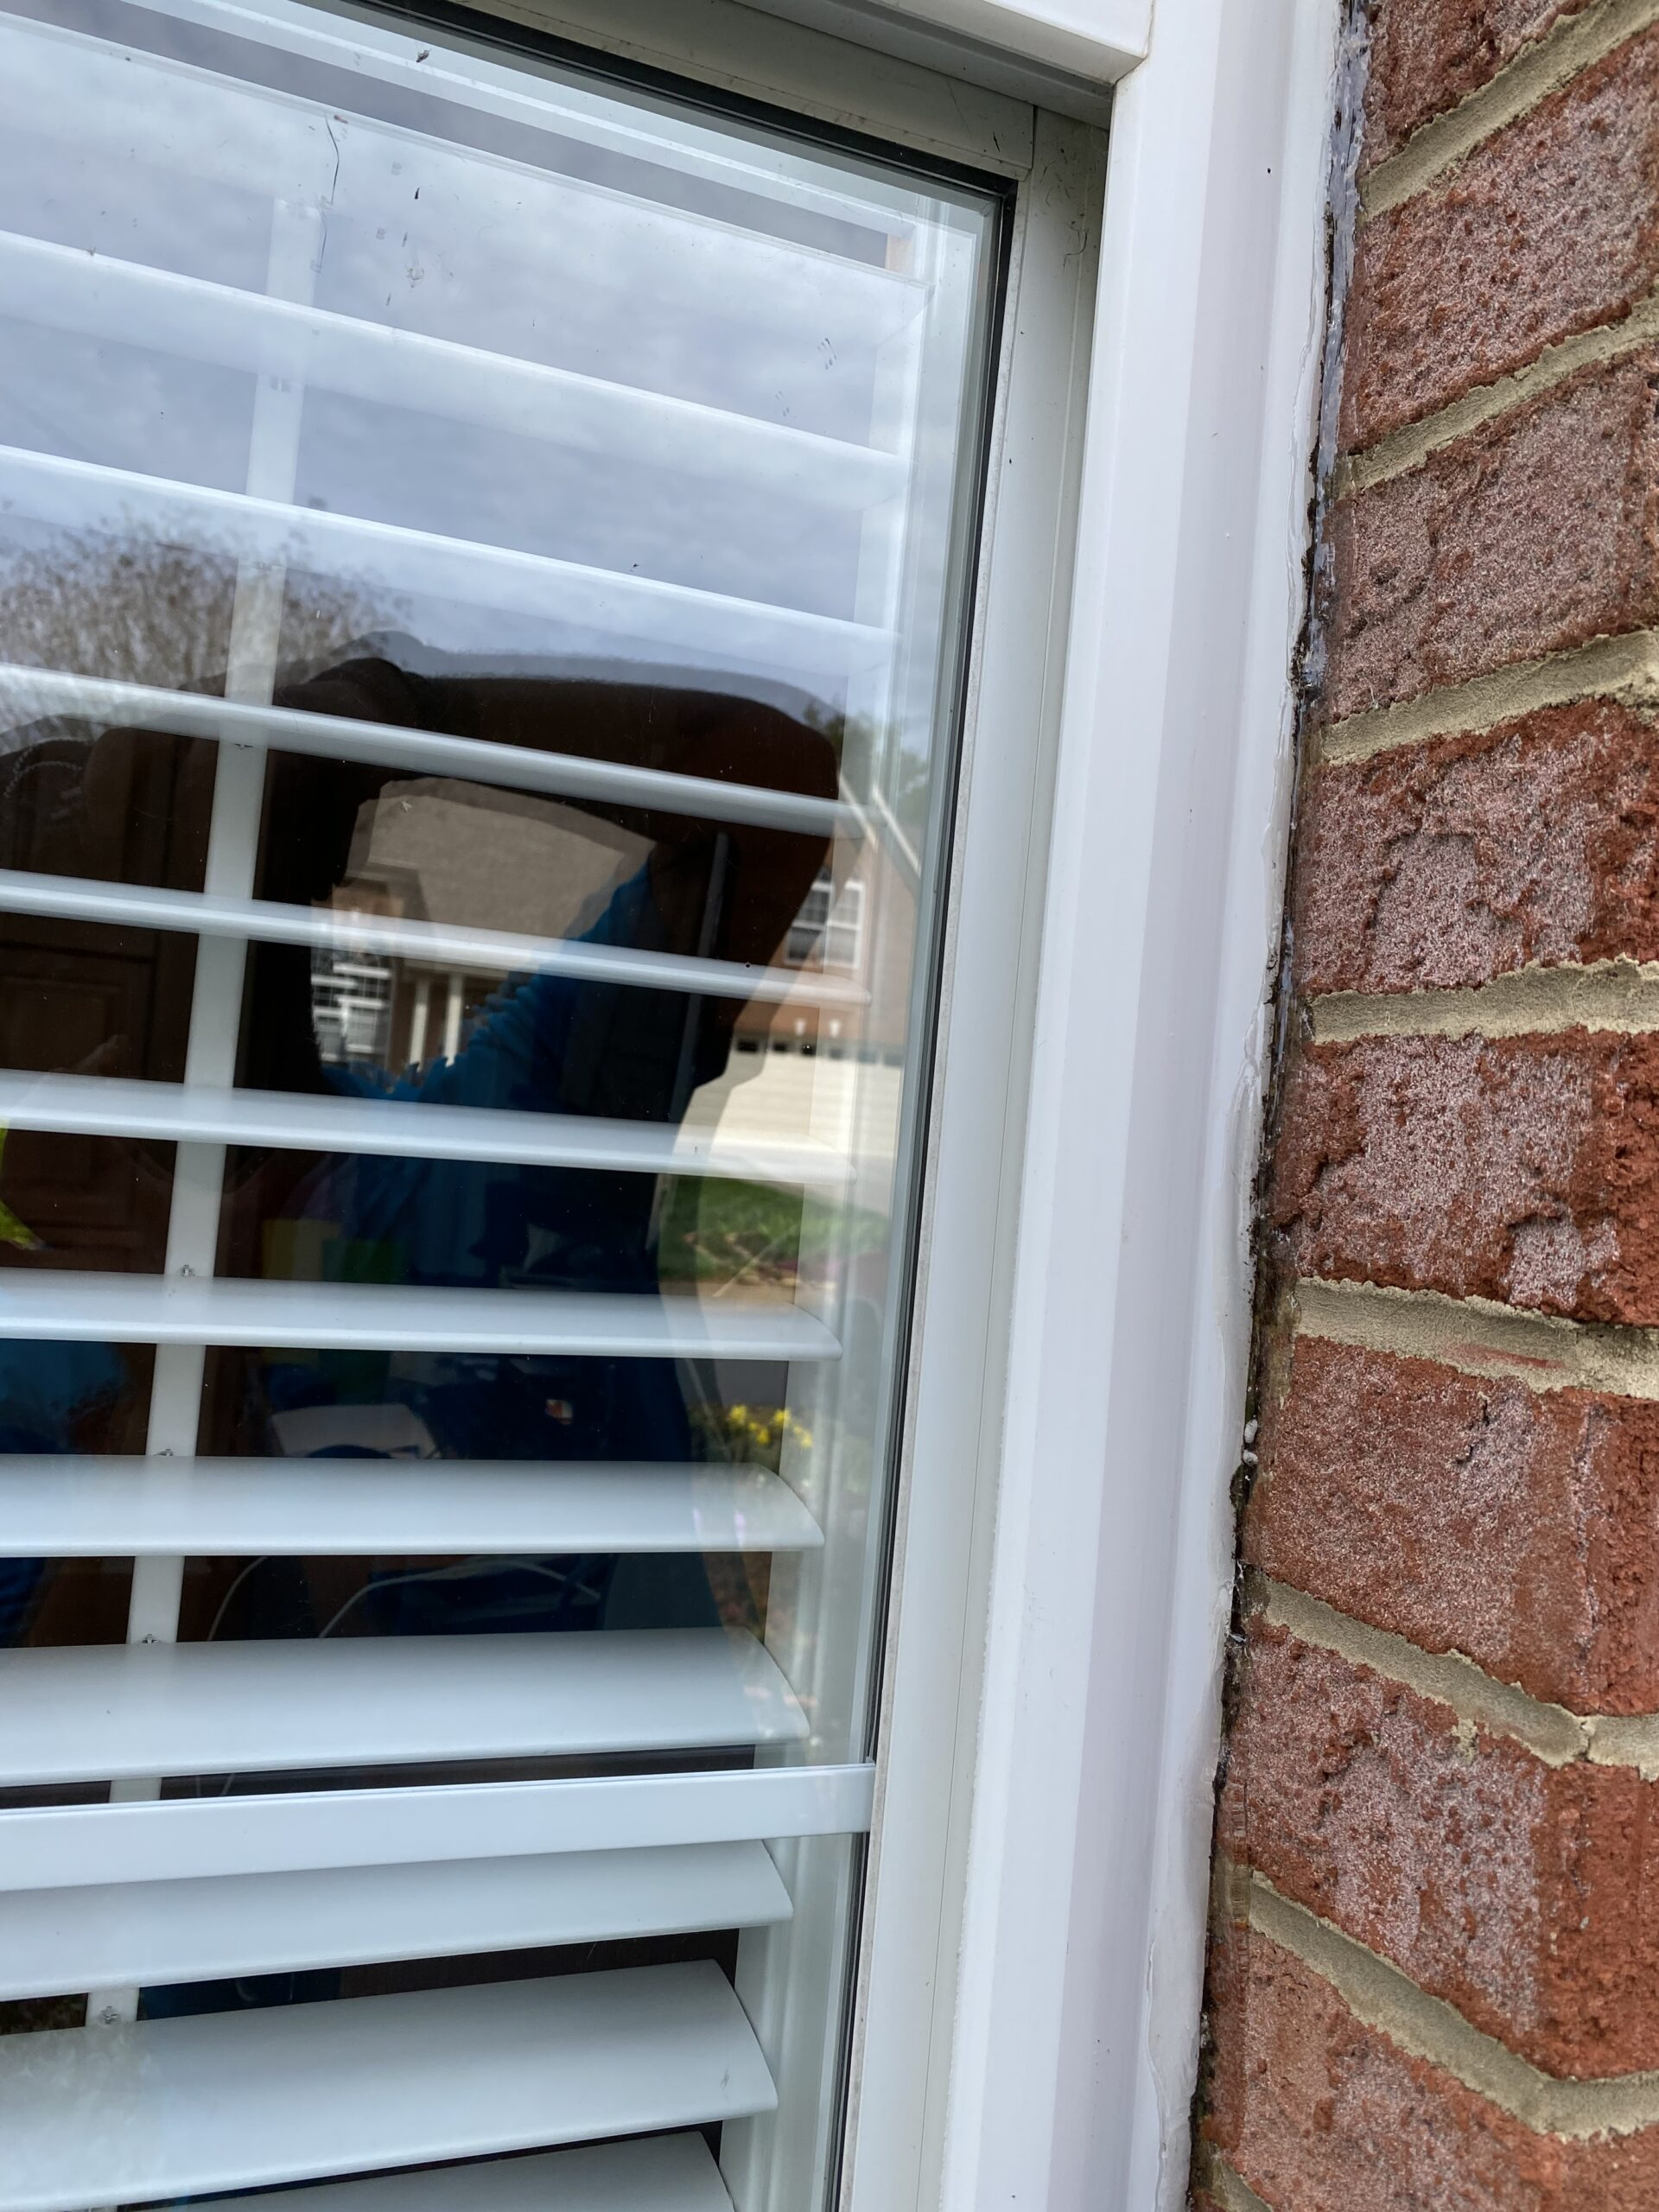 This is a picture of a window at a brick wall that has been sealed with clear caulk